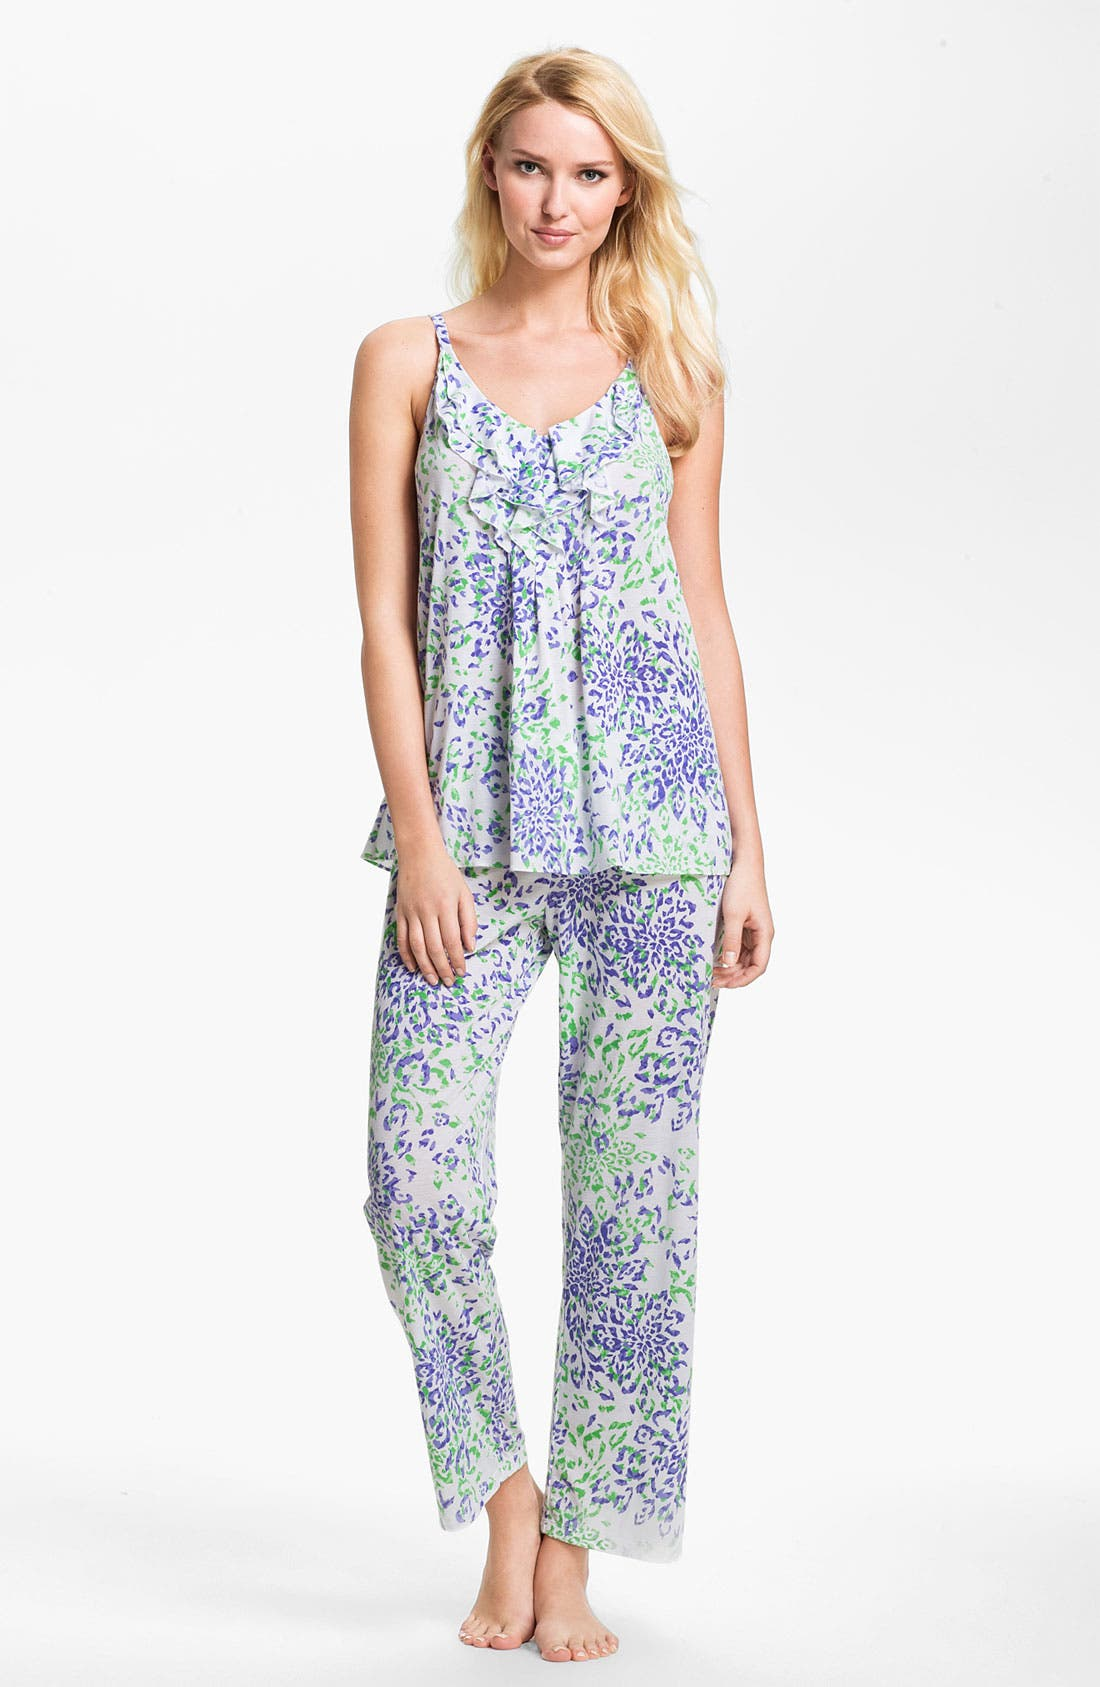 Alternate Image 1 Selected - Oscar de la Renta Sleepwear 'Animal Blossom' Print Pajamas